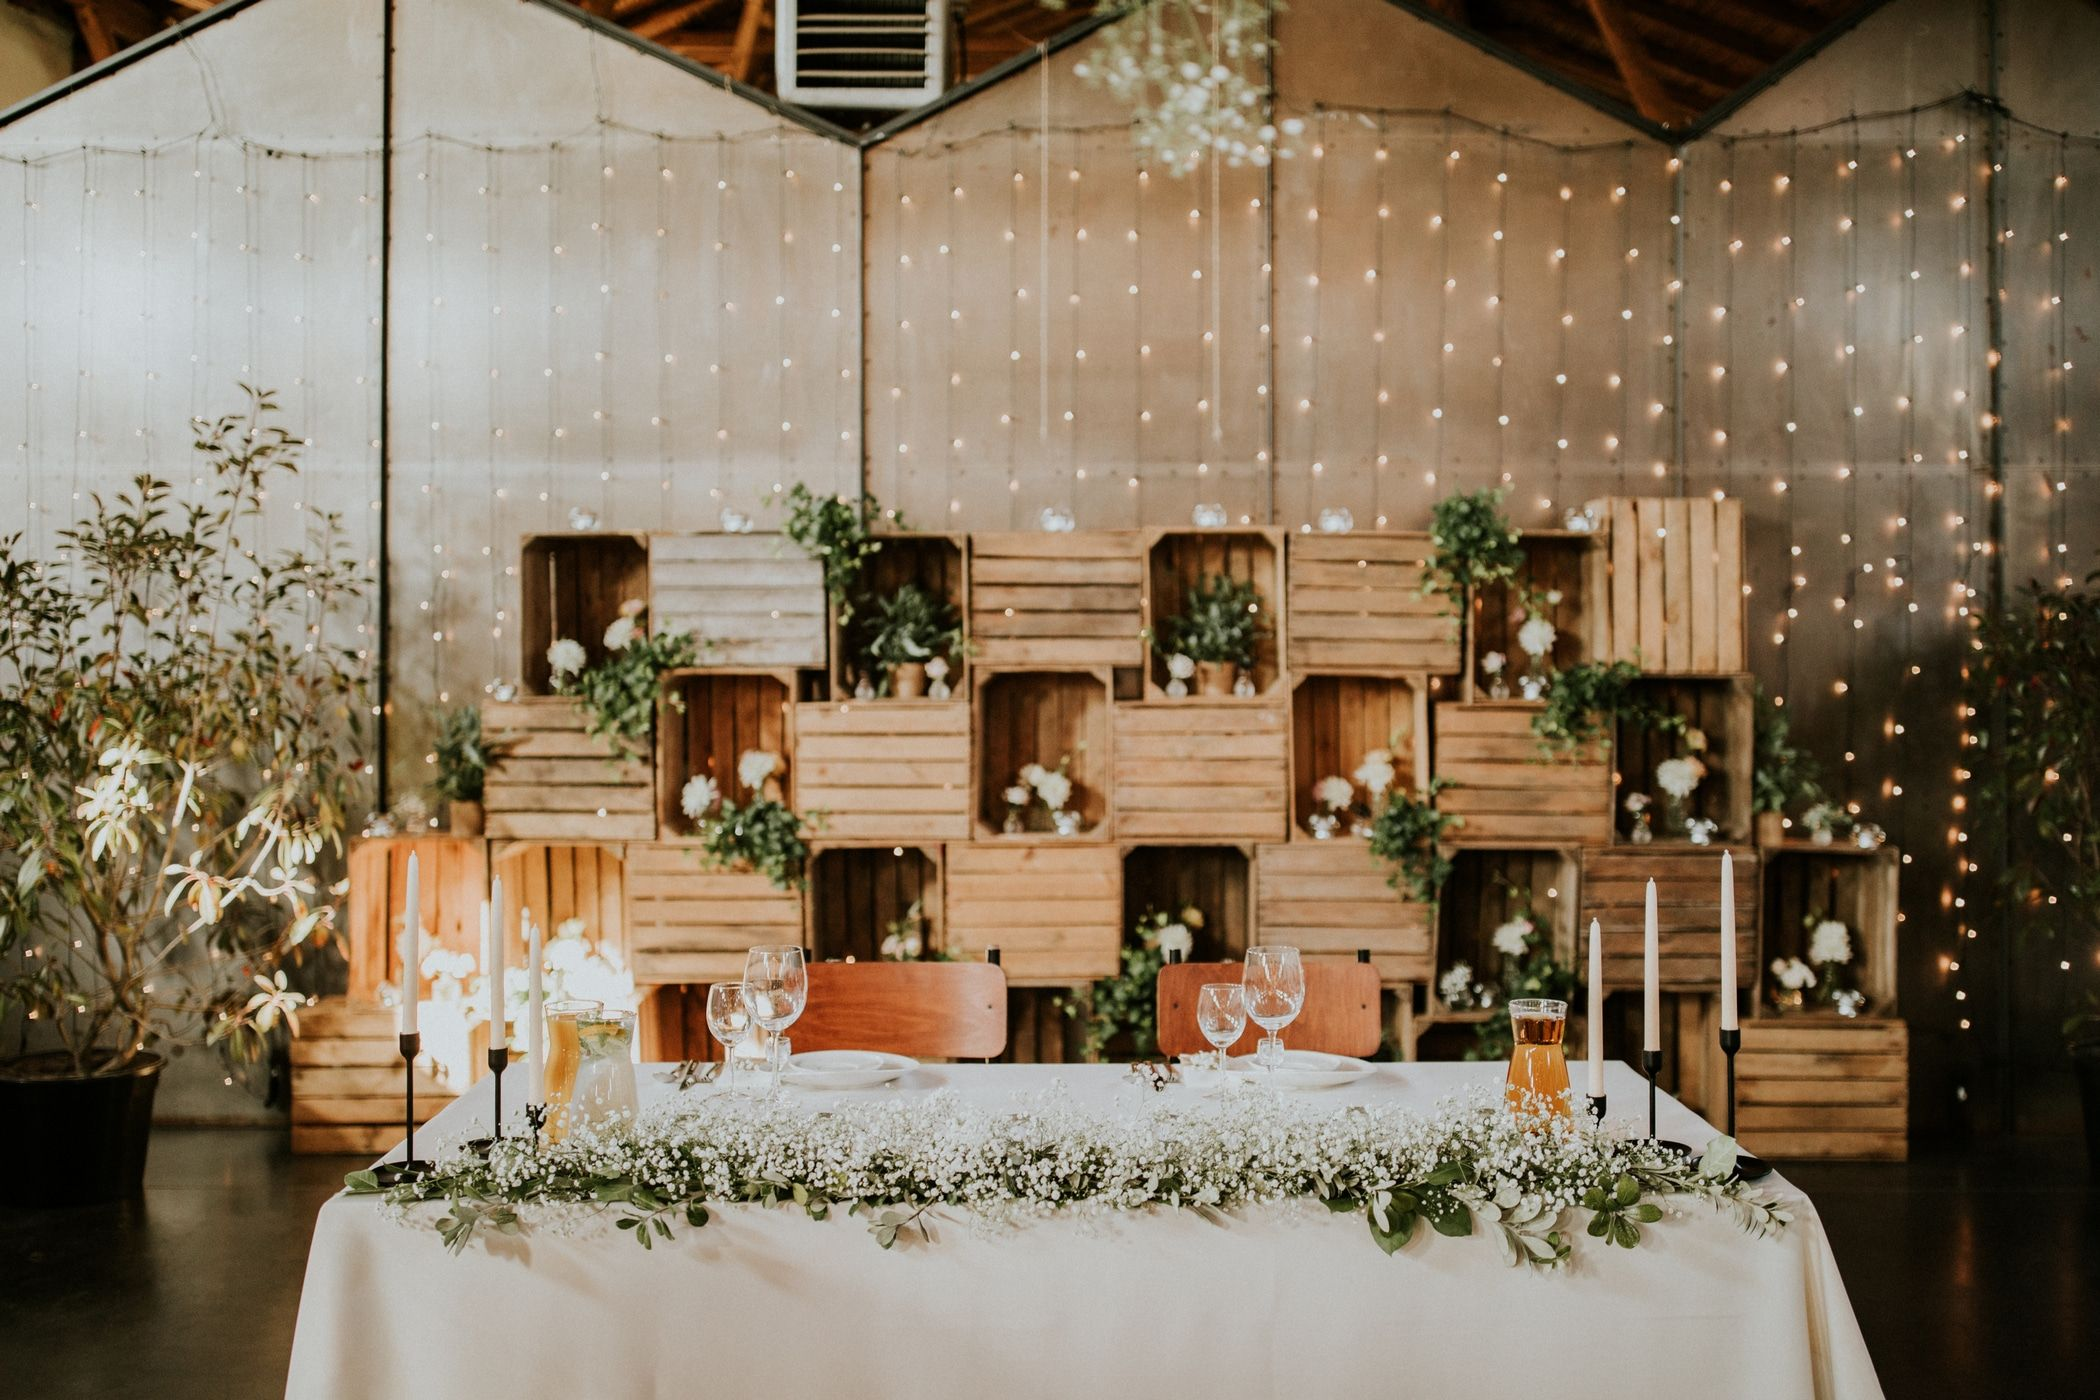 Inna Studio Table Decoration For A Bride And Groom Presidential Table Decoration With A Plaster Reception Head Table Wedding Reception Backdrop Wall Backdrops